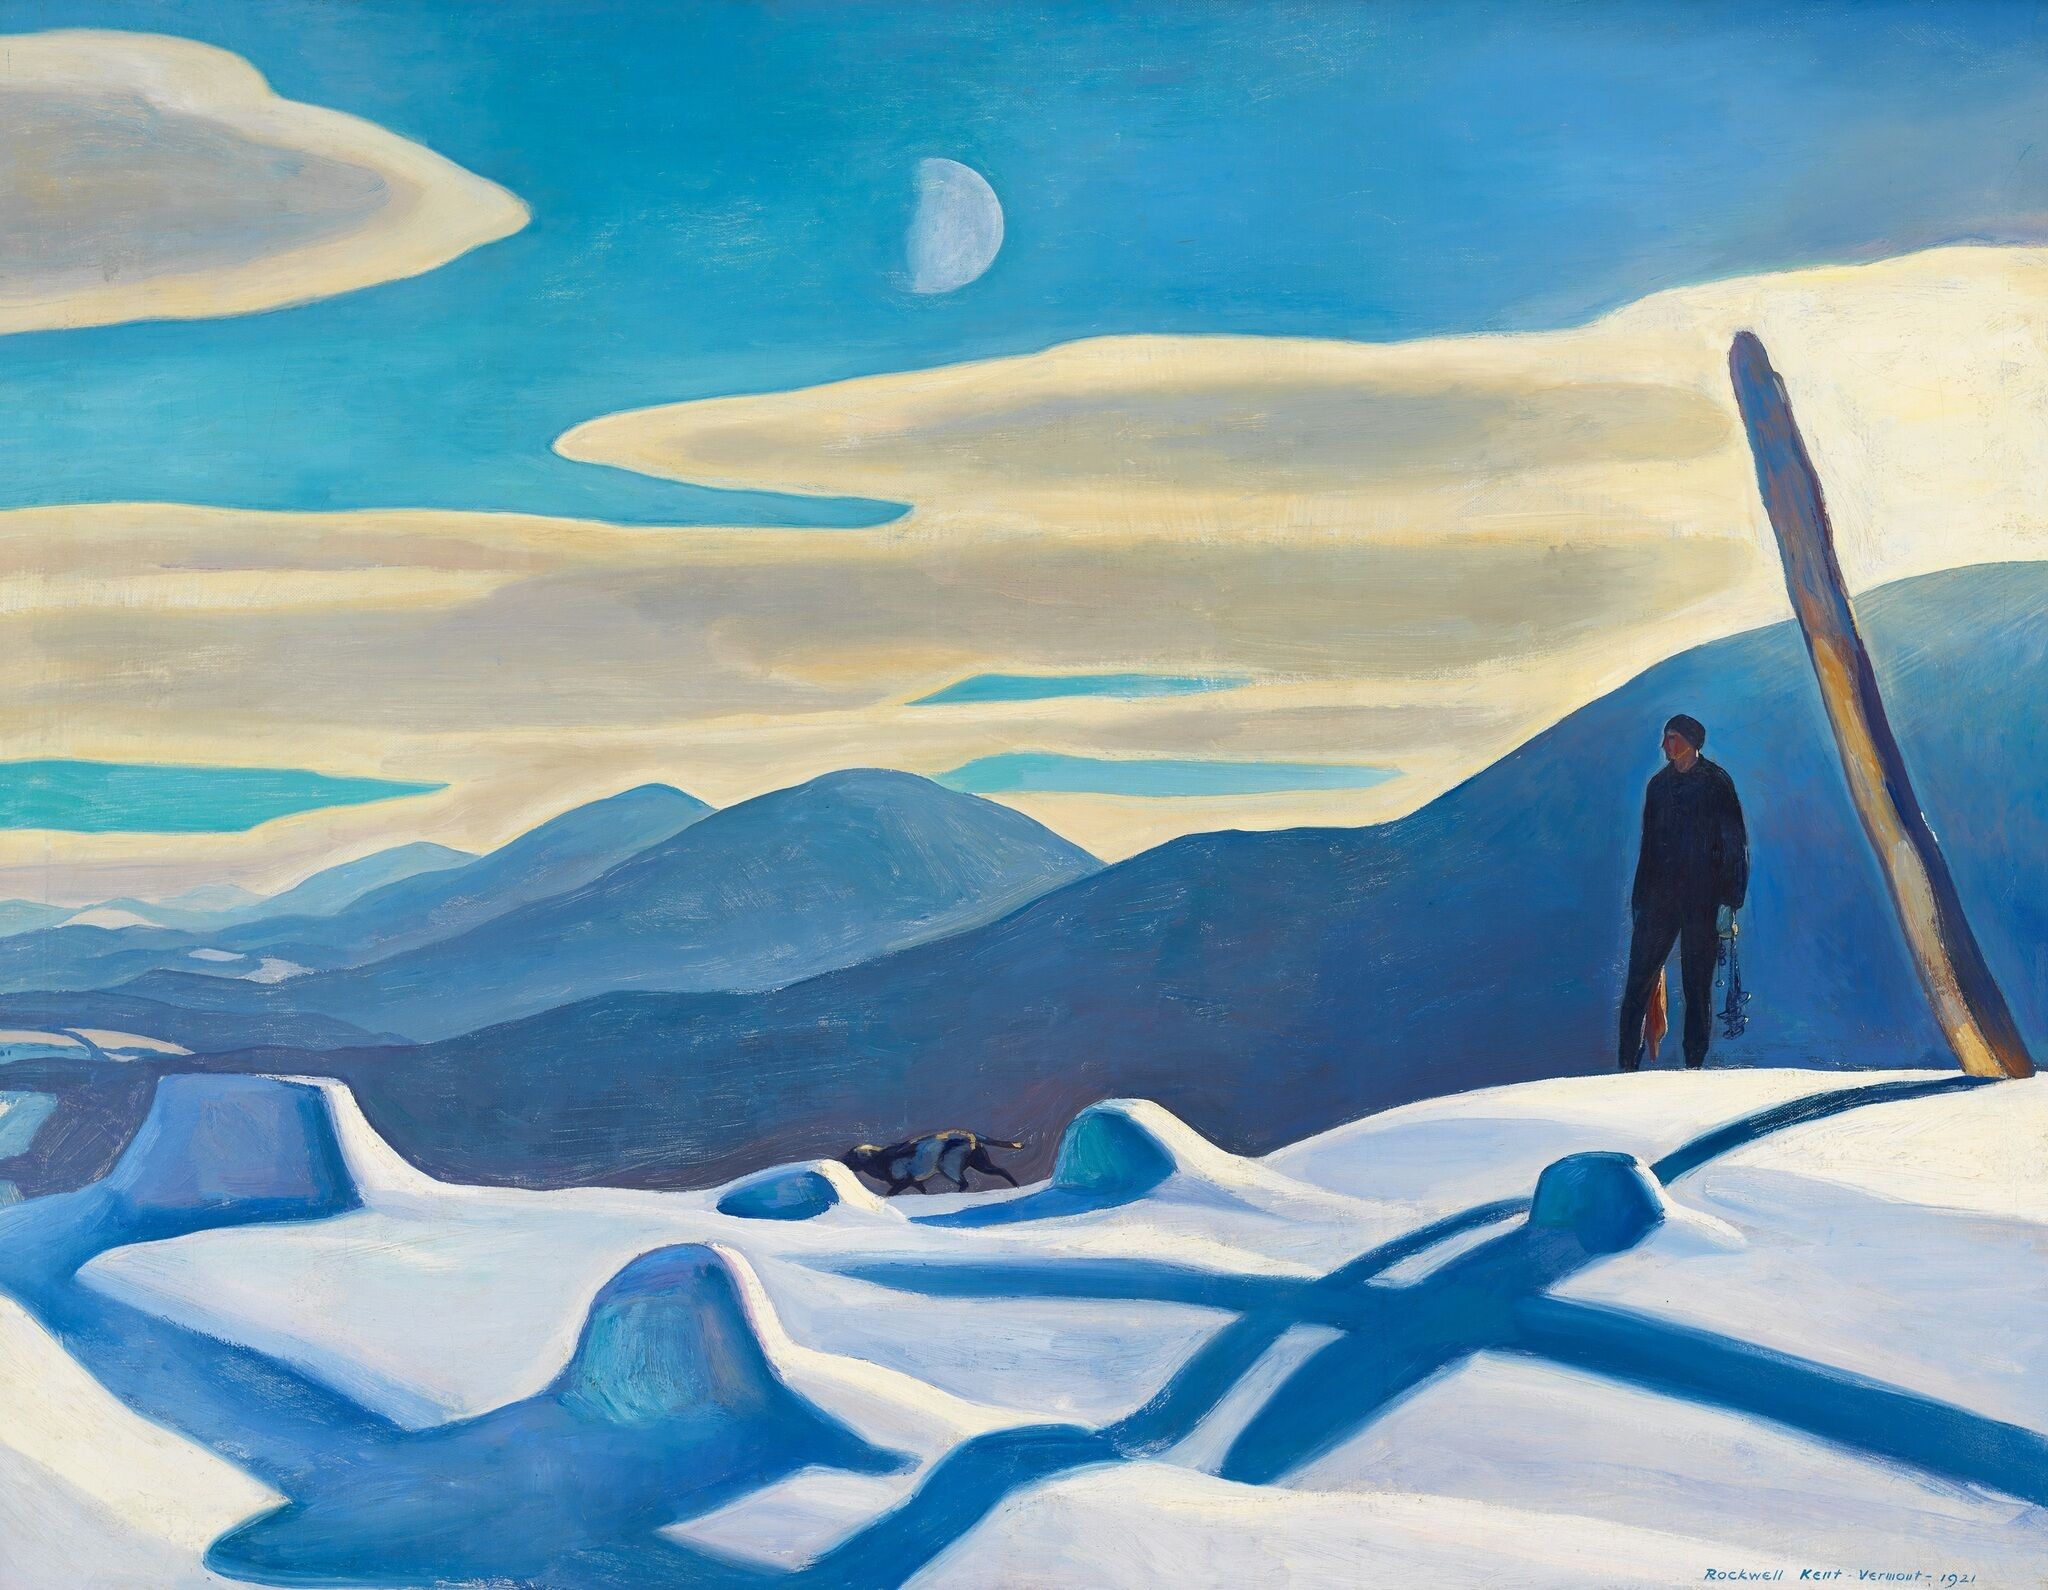 A painting of a person looking out at a snowy hillside landscape.